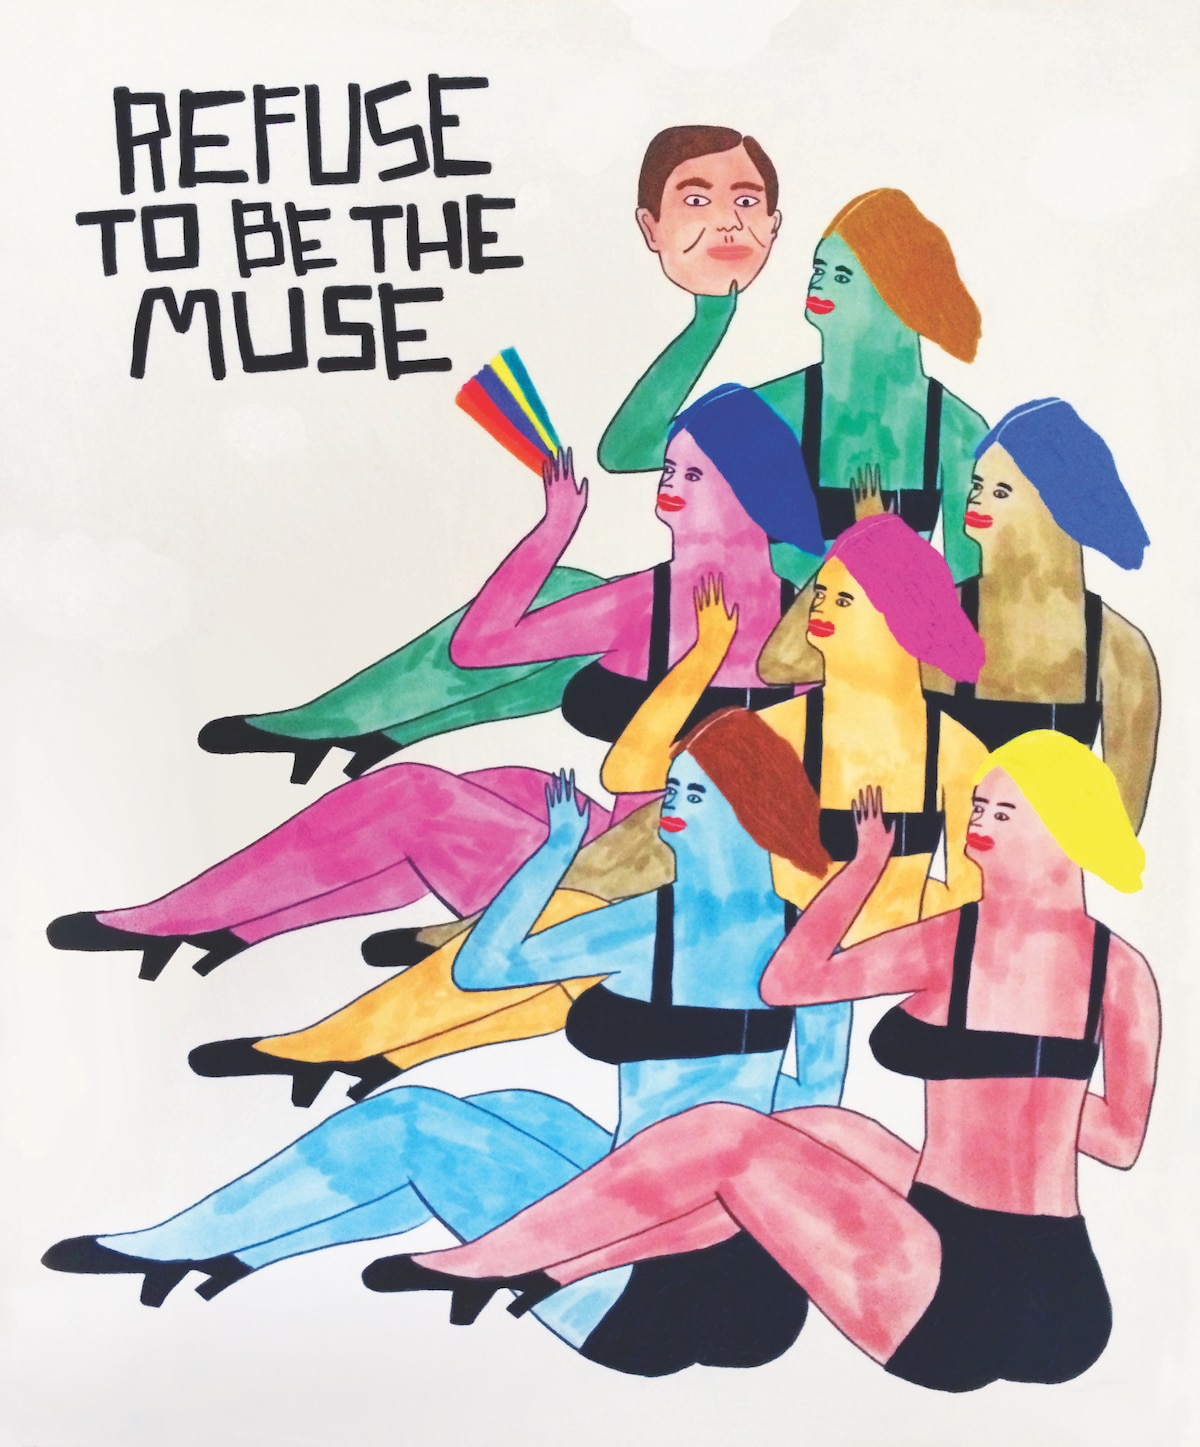 Saatchi - Refuse to Be the Muse catálogo mujeres artistas